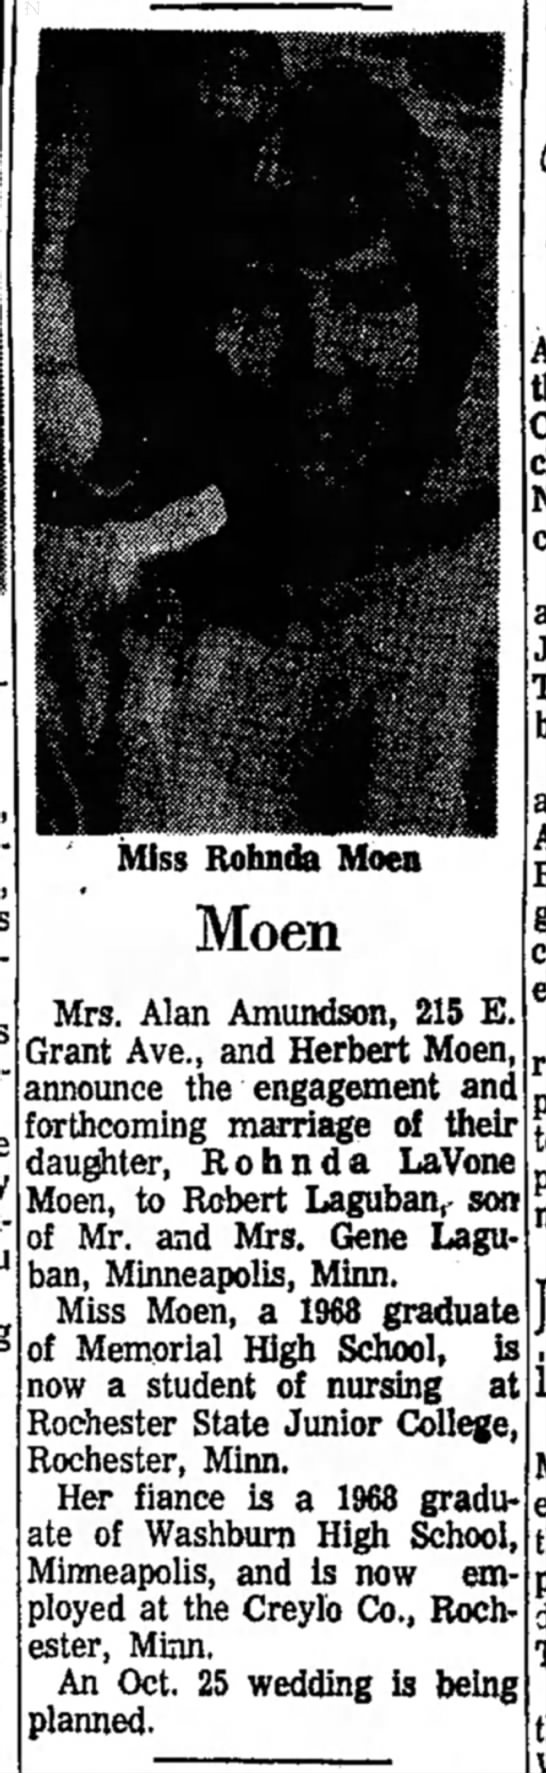 Rohnda LaVone Moen - engagement to Robert Laguban  - Miss Rohnda Moen Moen Mrs. Alan Amundson, 215...